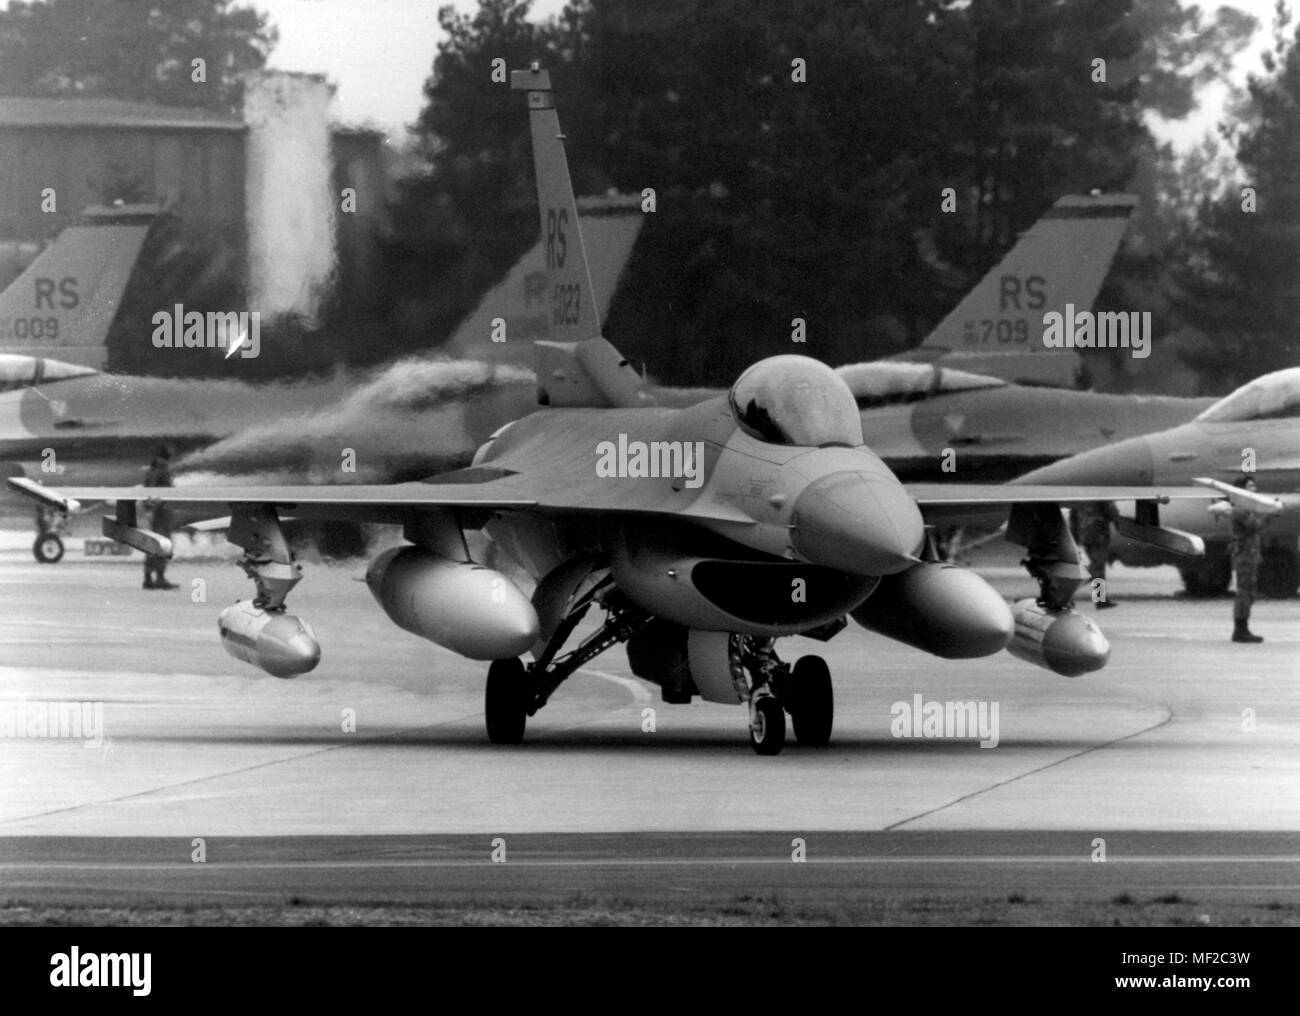 An F-16 fighter plane of the 526th US Air Force fighter squadron on 5.2.1994 at the US Air Base in Ramstein. Twelve of the American F-16 fighter pilots were transferred from the Ramsteiner military airport after Aviano in northern Italy. | usage worldwide - Stock Image